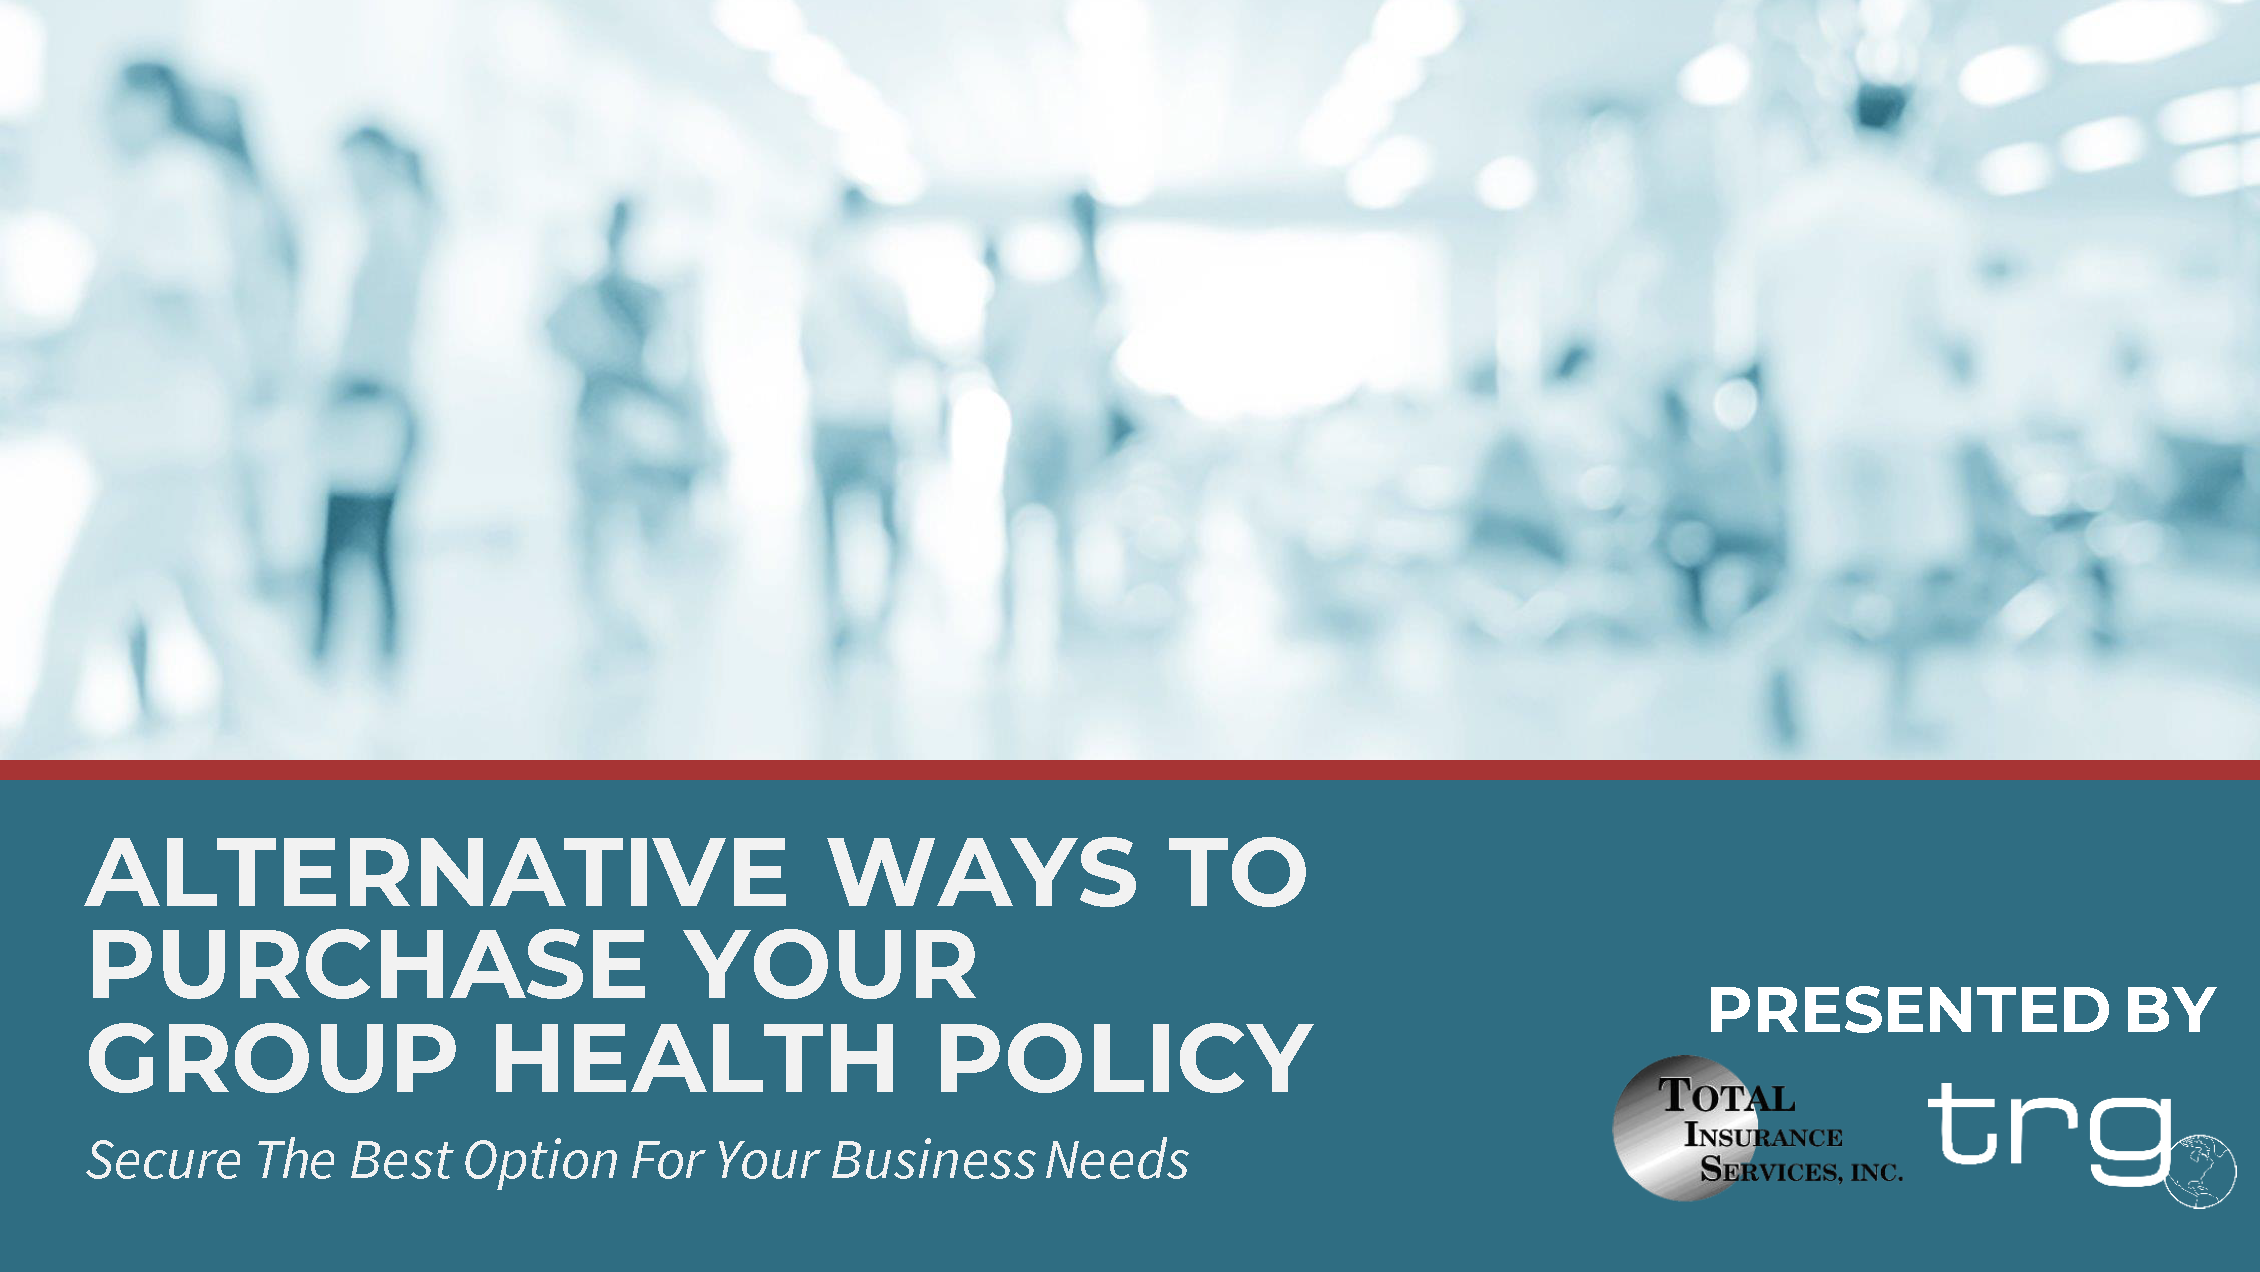 TRG holds a webinar with their partners at Total Insurance explaining alternatives to traditional group health policies for your business.